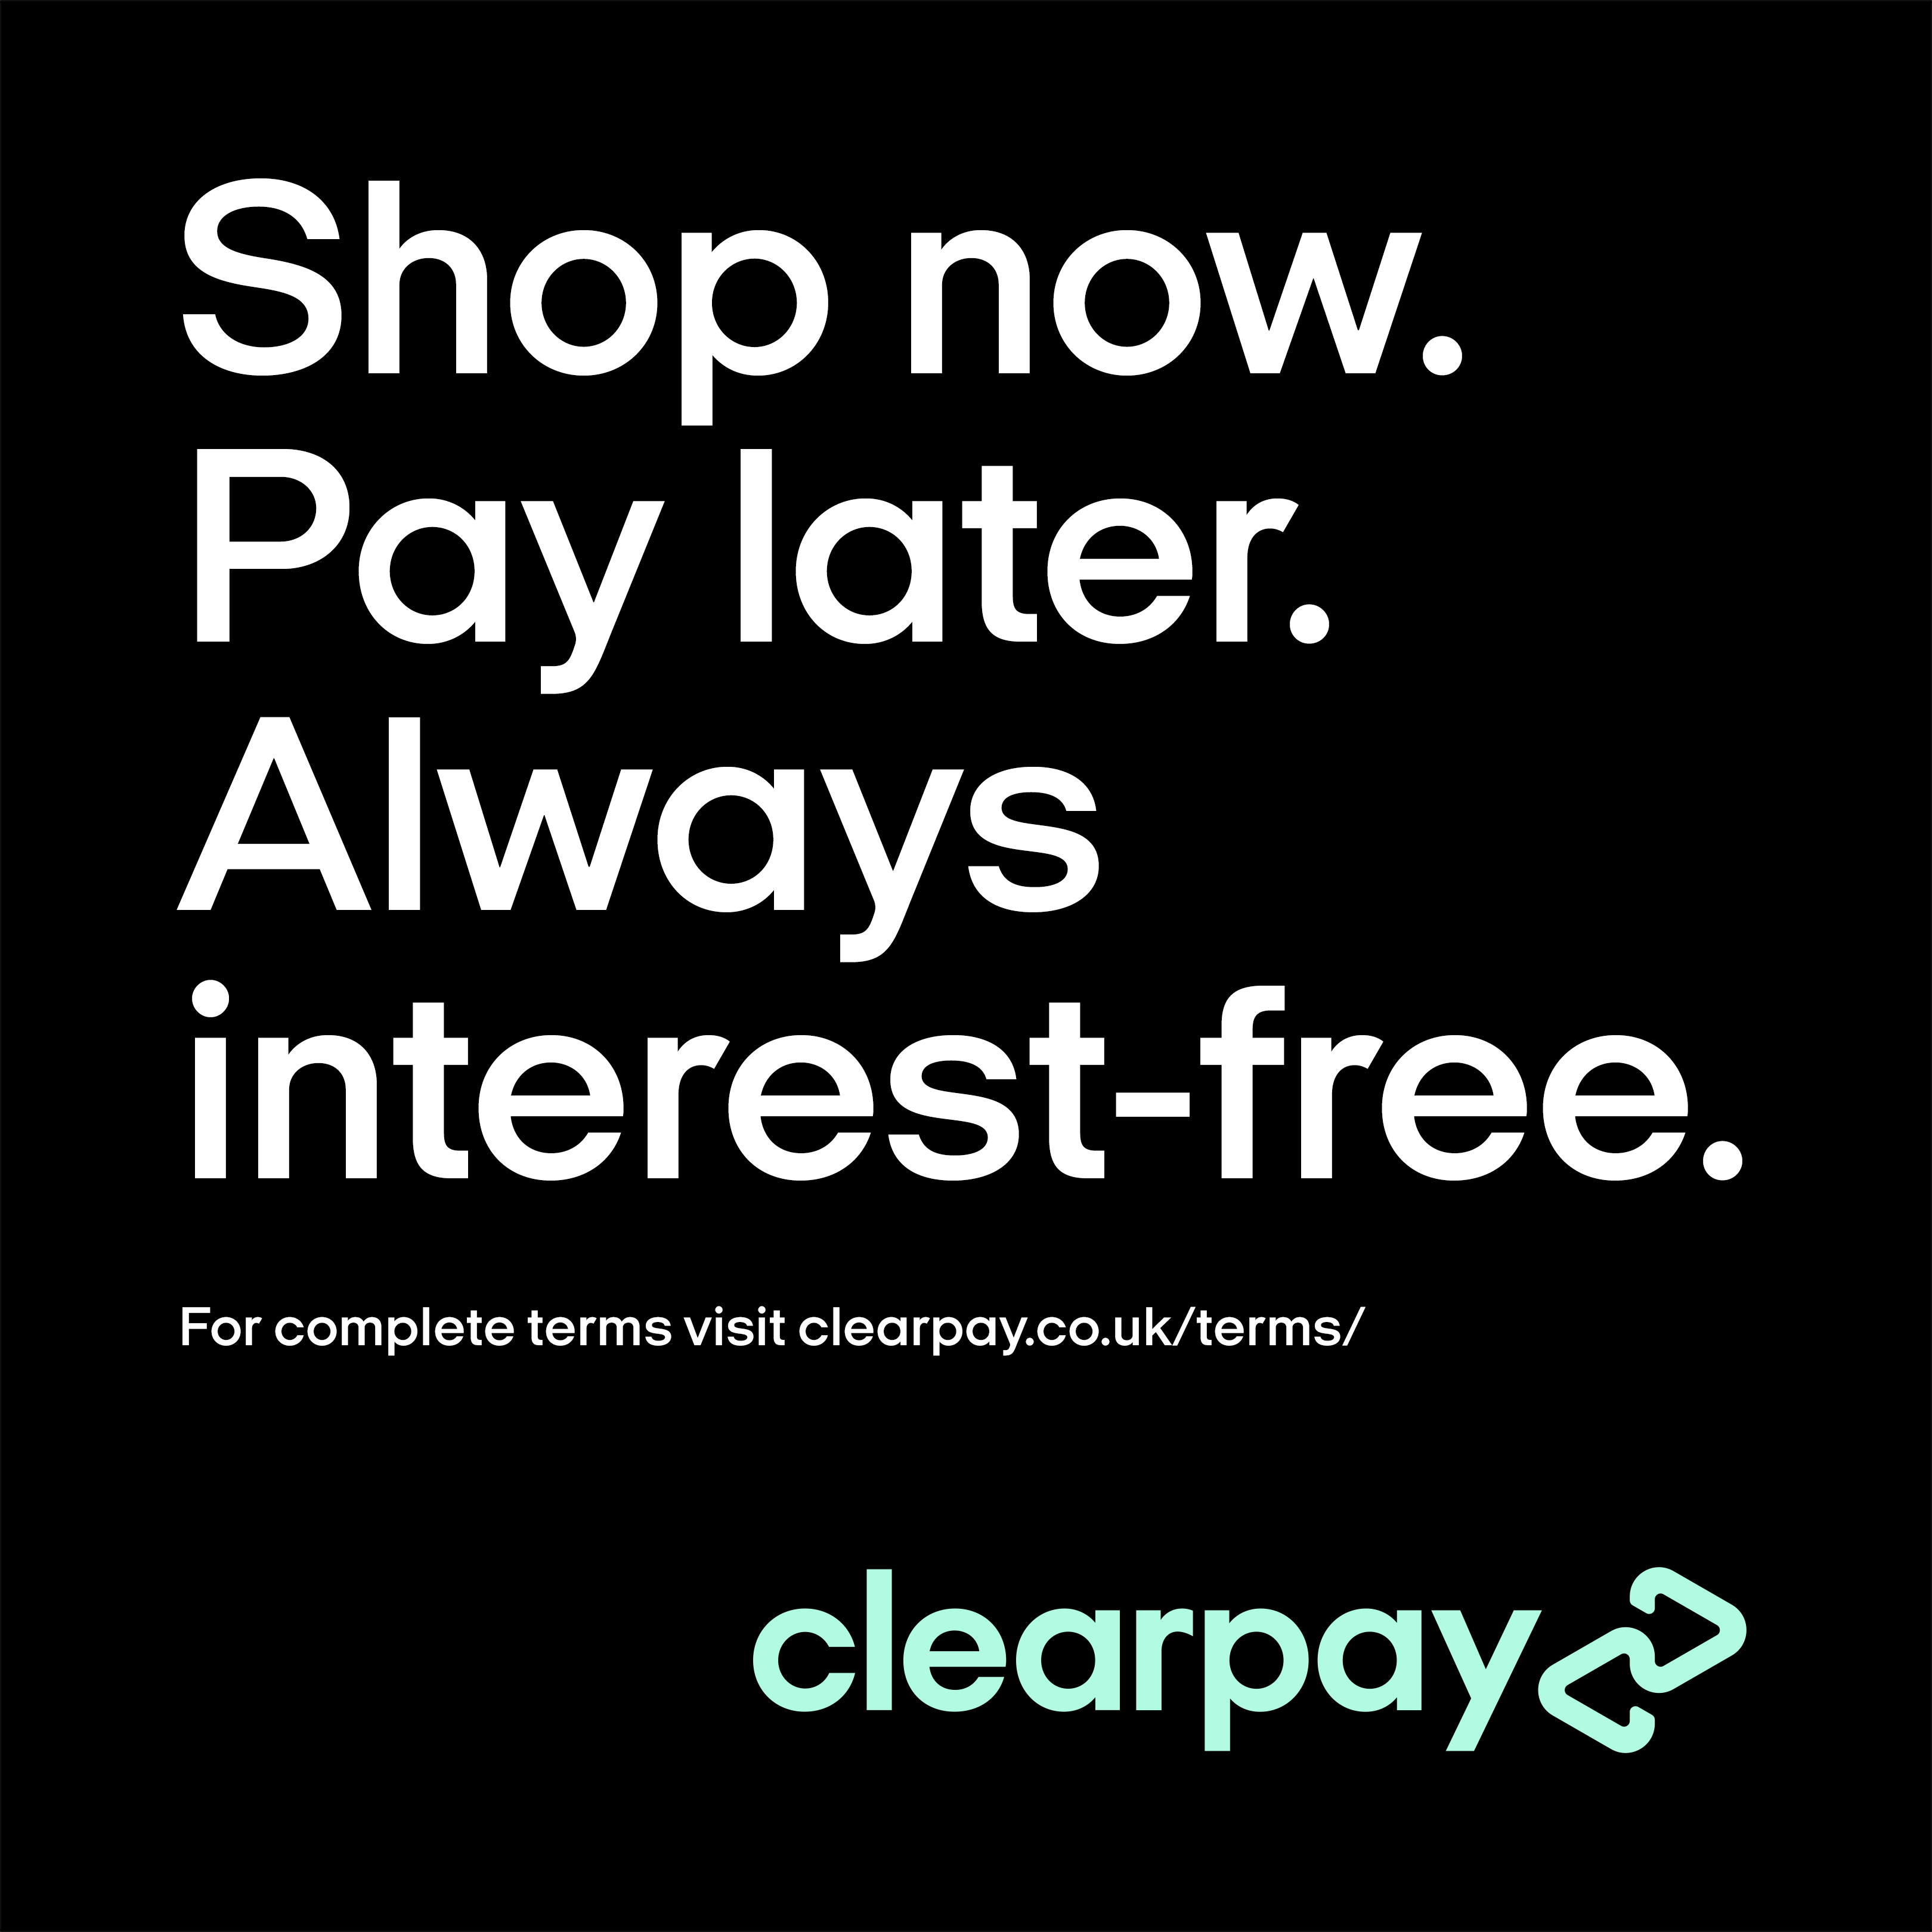 https://www.clearpay.co.uk/en-GB/how-it-works